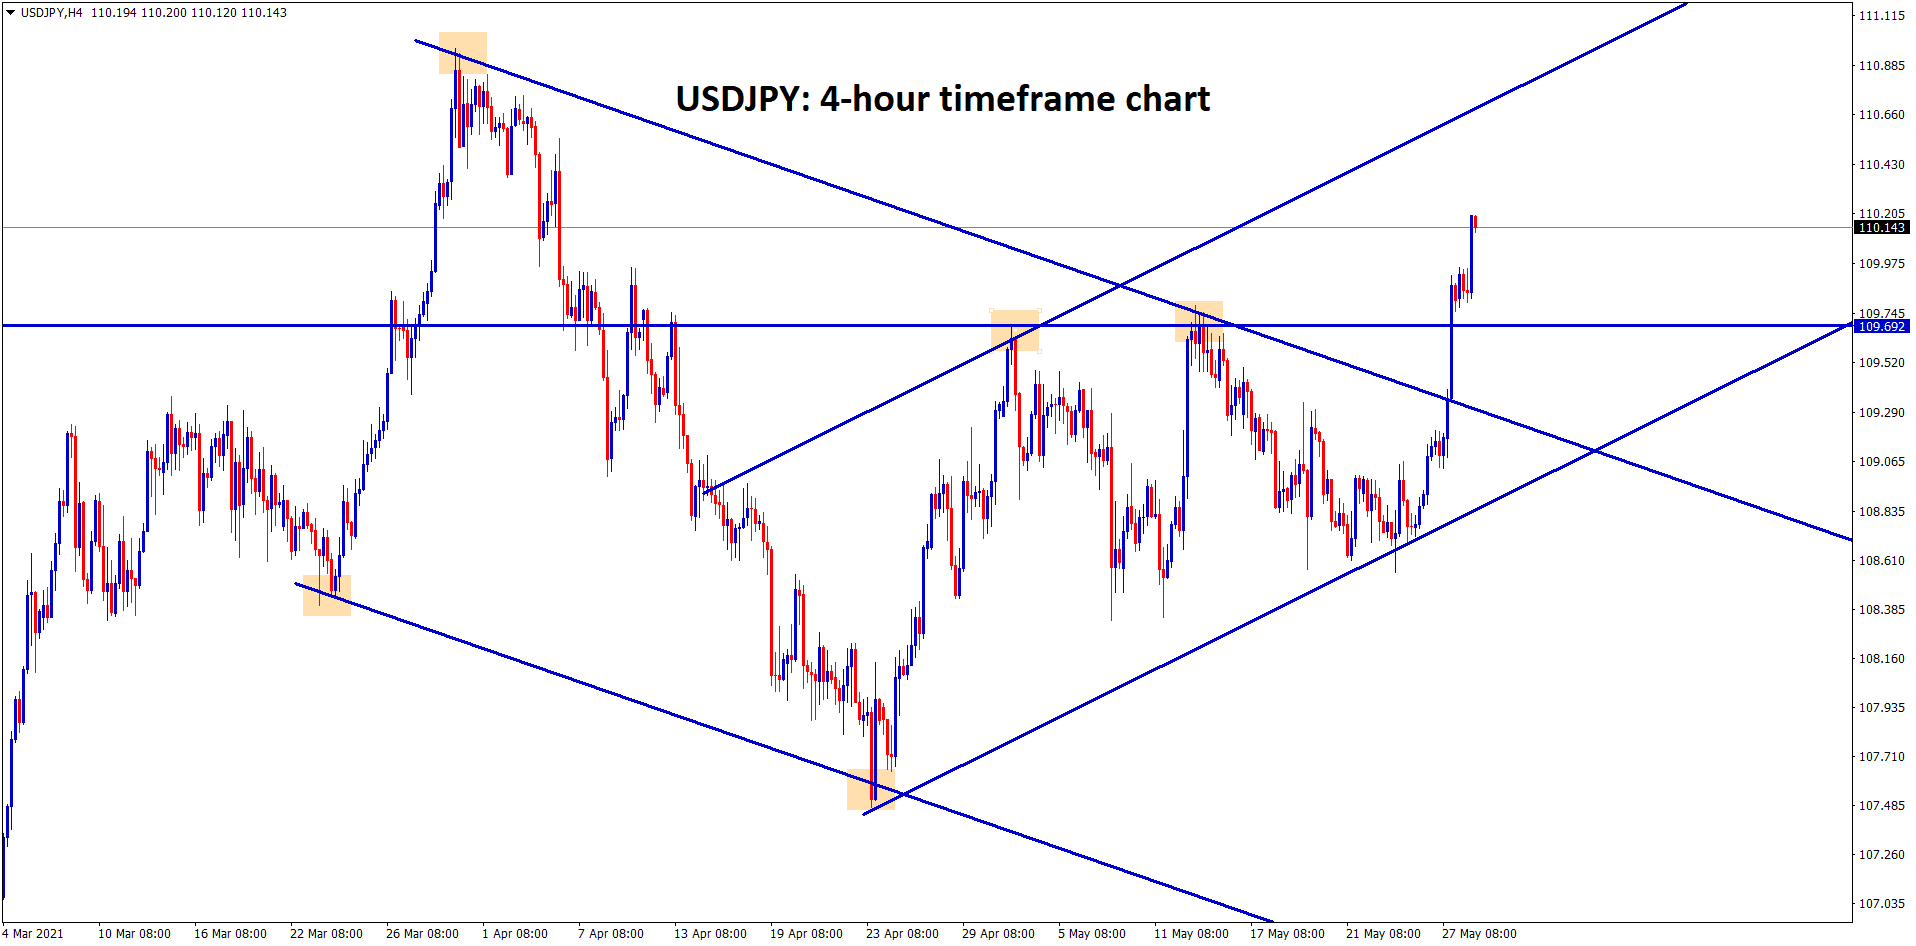 USDJPY is moving in an uptrend breaking the ascending triangle top